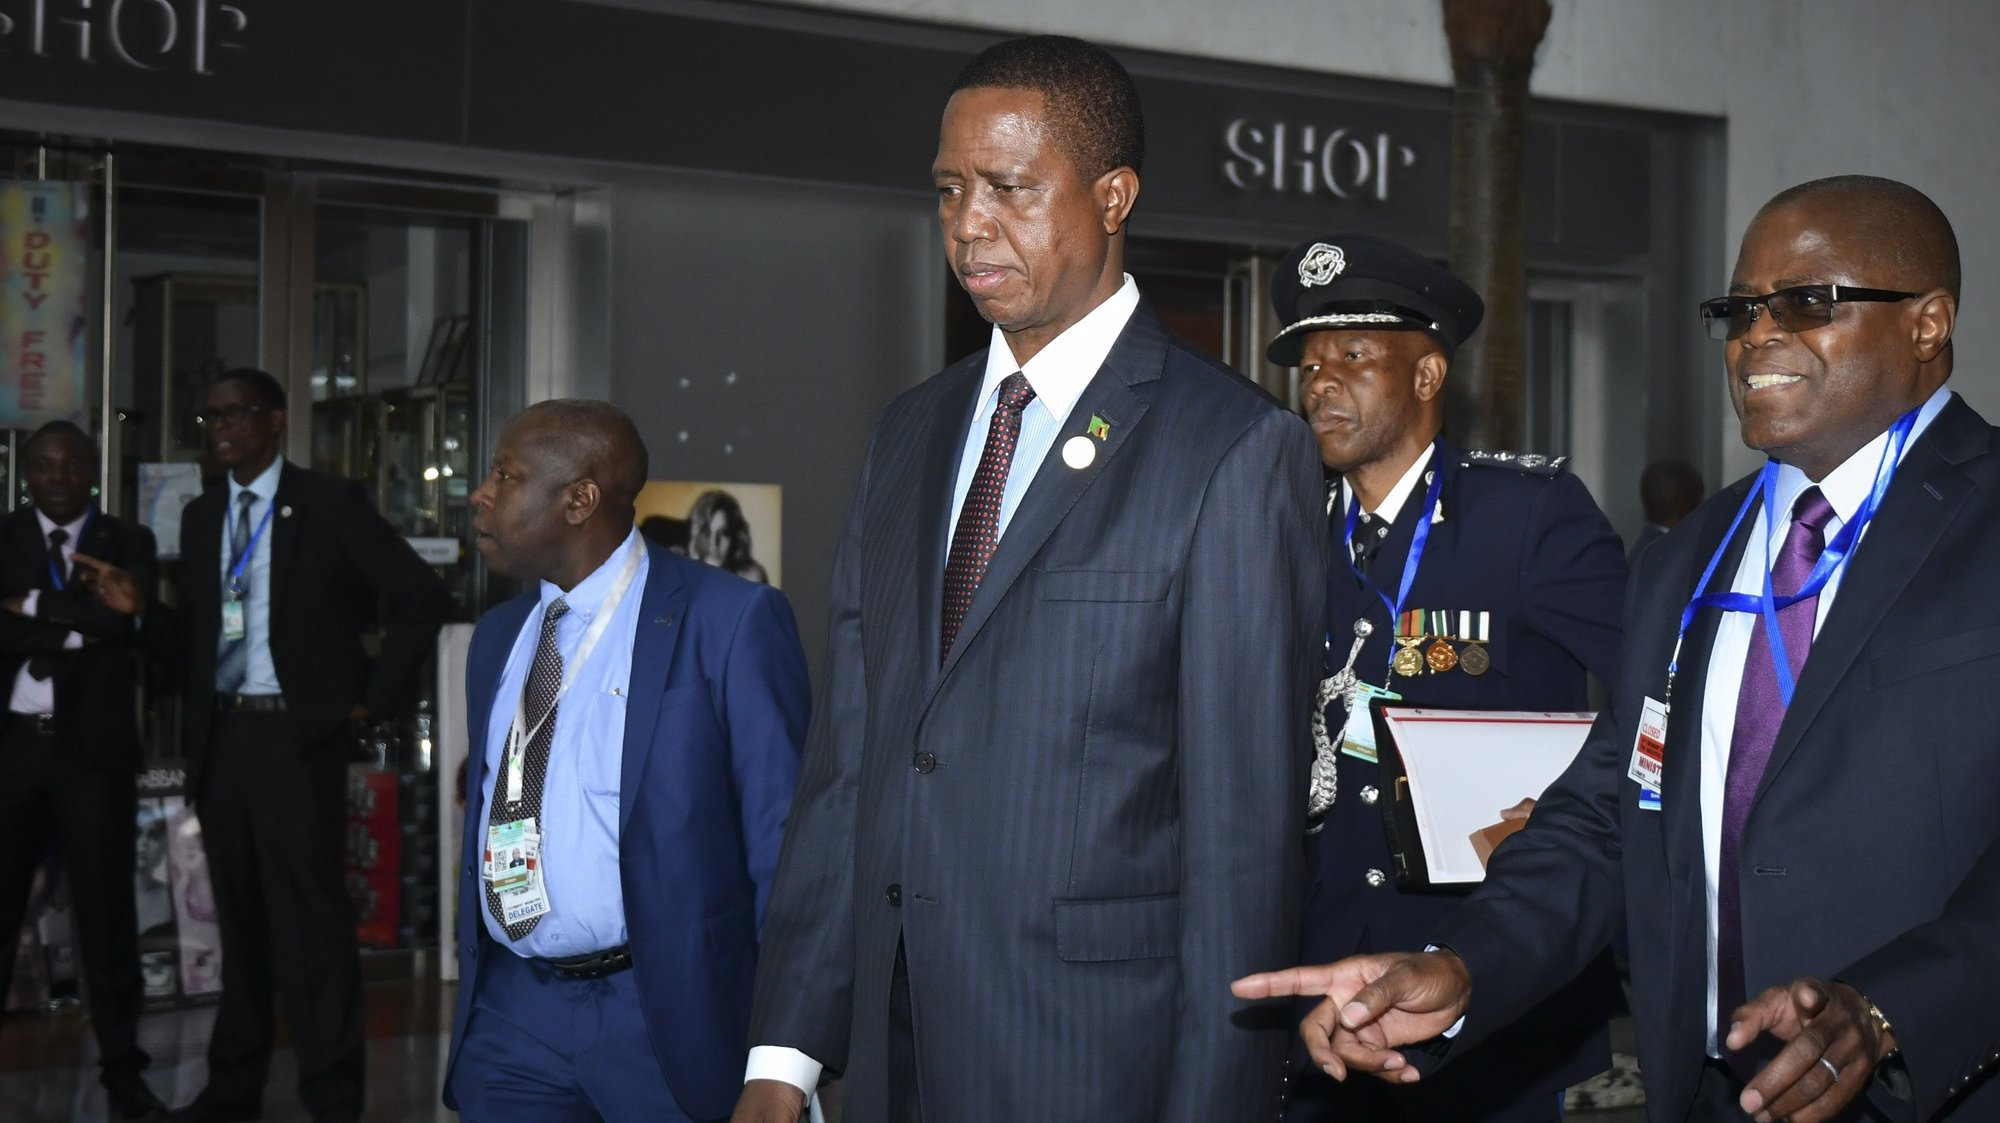 epa07358386 President of Zambia Edgar Lungu (C) arrives to attend the 32nd African Union Summit in Addis Ababa, Ethiopia, 10 February 2019. African heads of state and business leaders are gathering in Ethiopian capital for a two-day summit under the theme 'Refugees, Returnees and Internally Displaced Persons: Towards Durable Solutions to Forced Displacement in Africa'.  EPA/STRINGER